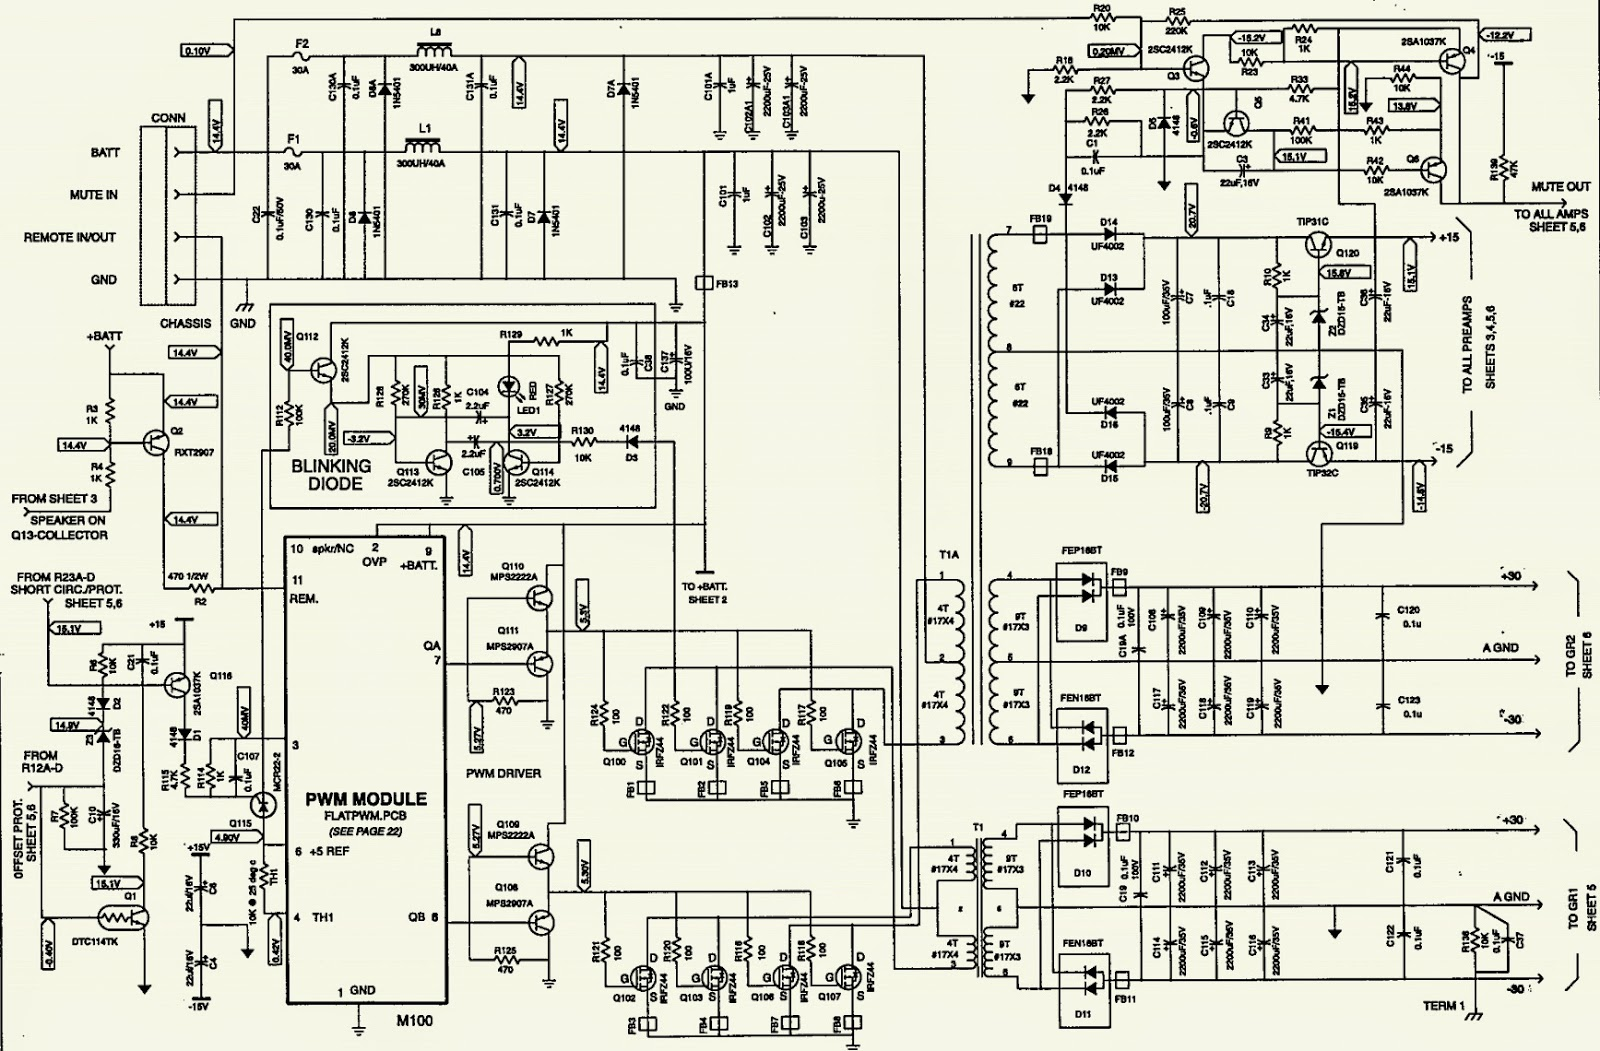 JBL JTQ360 - CAR AUDIO - SCHEMATIC [Circuit Diagram]